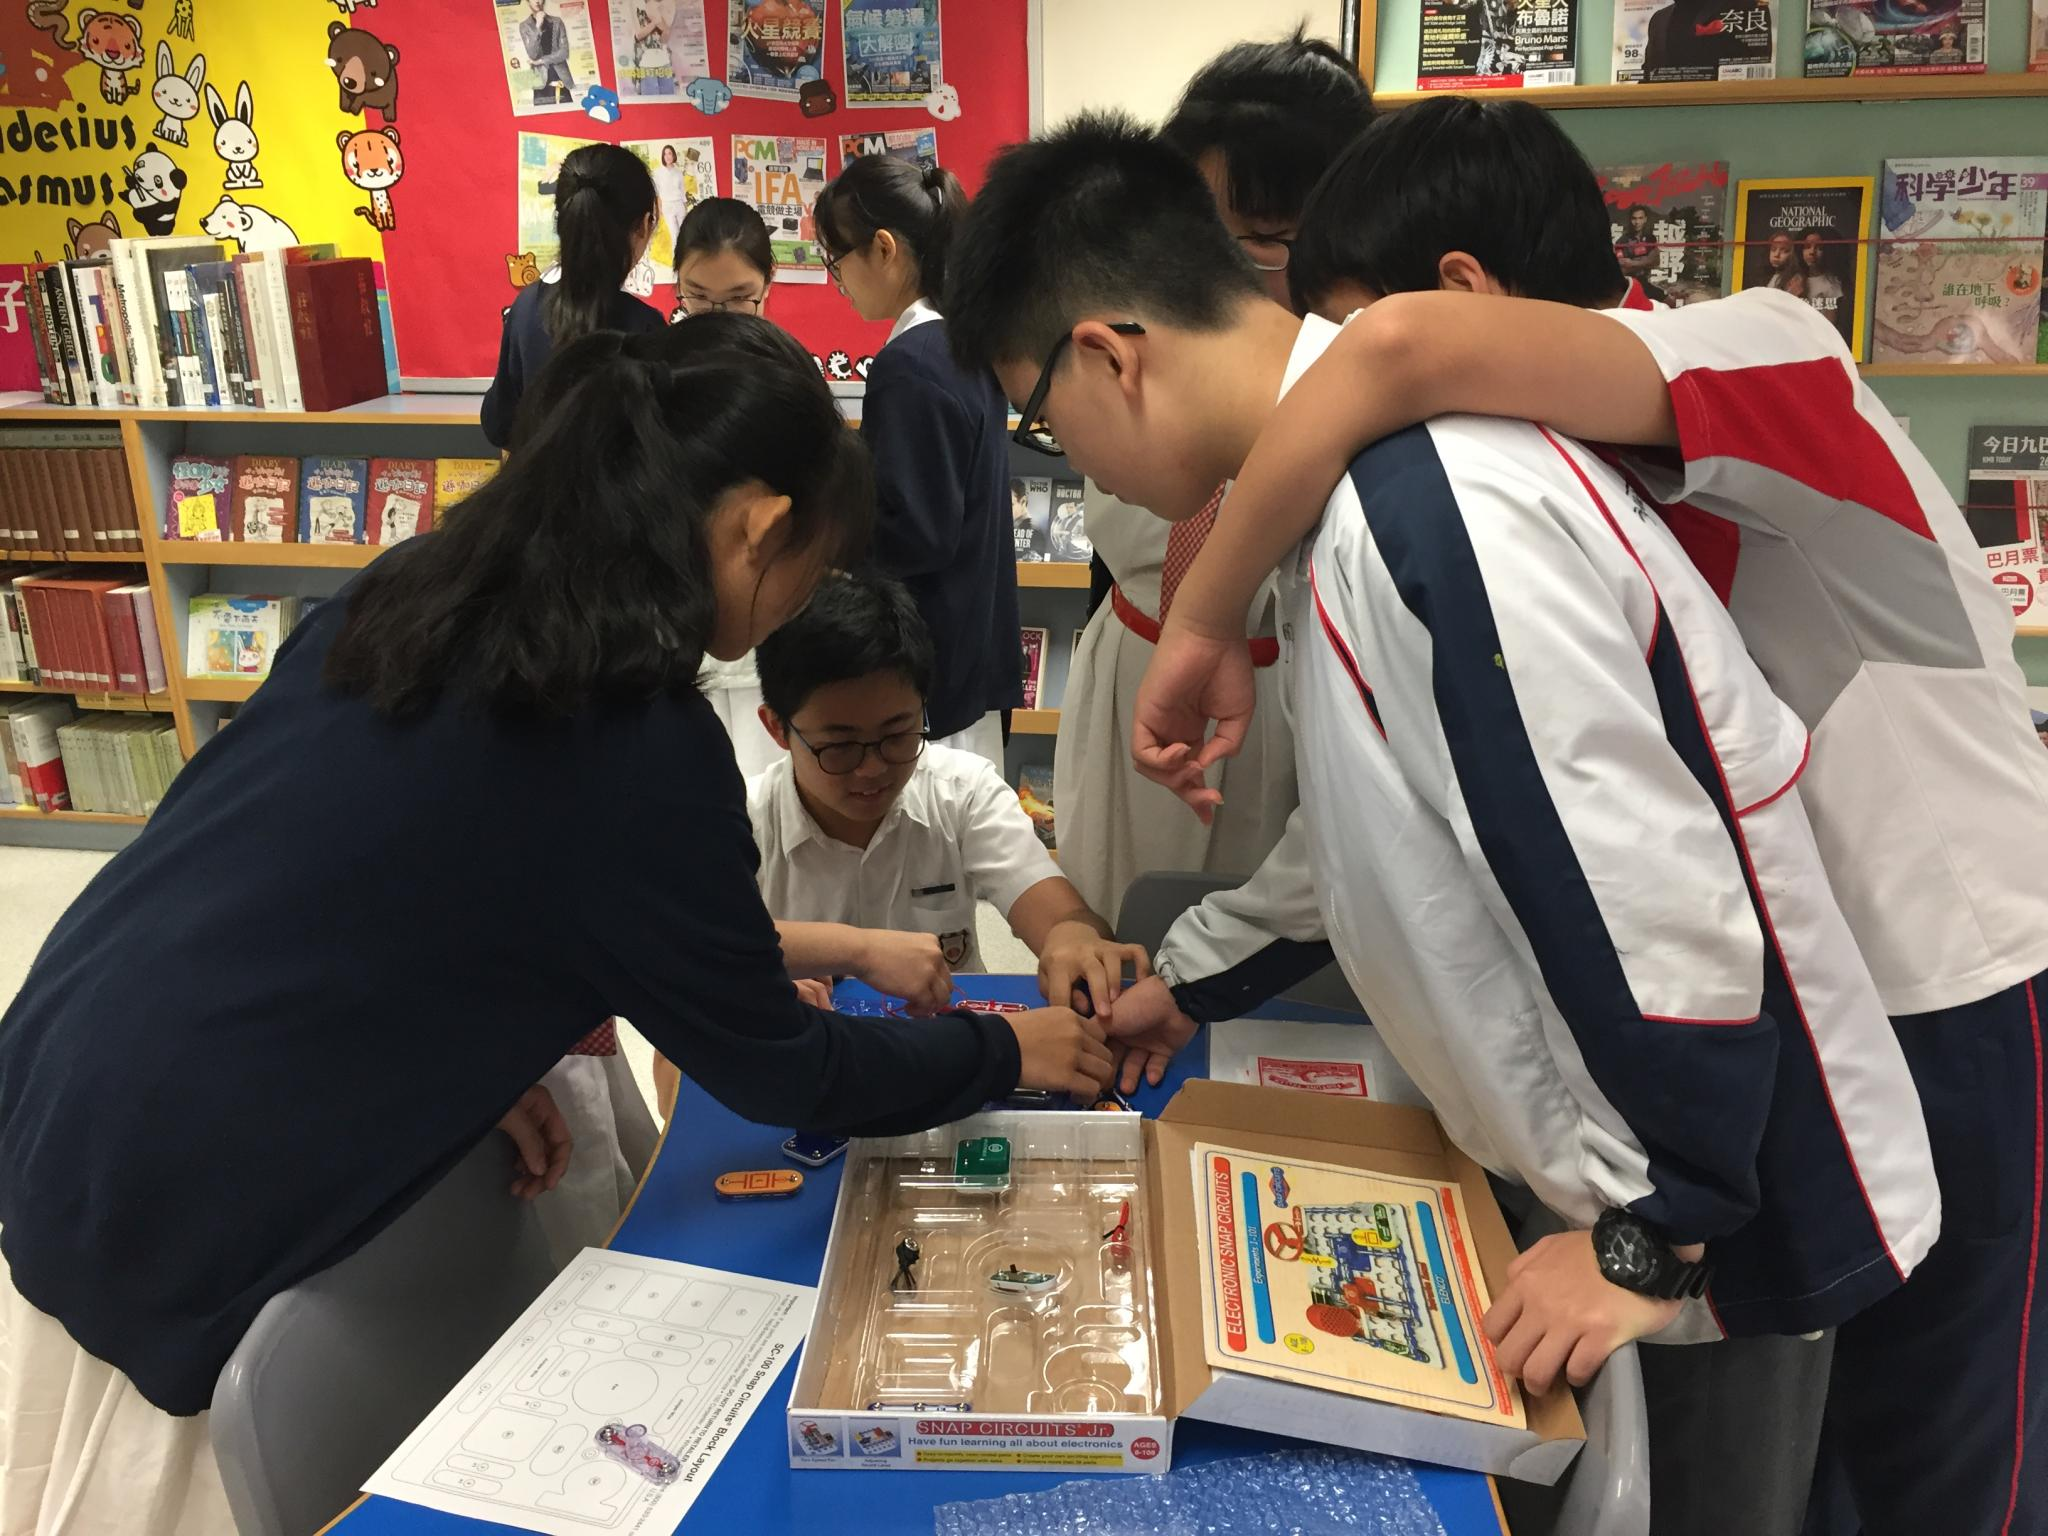 Students were playing the Electronics Discovery Kit together.